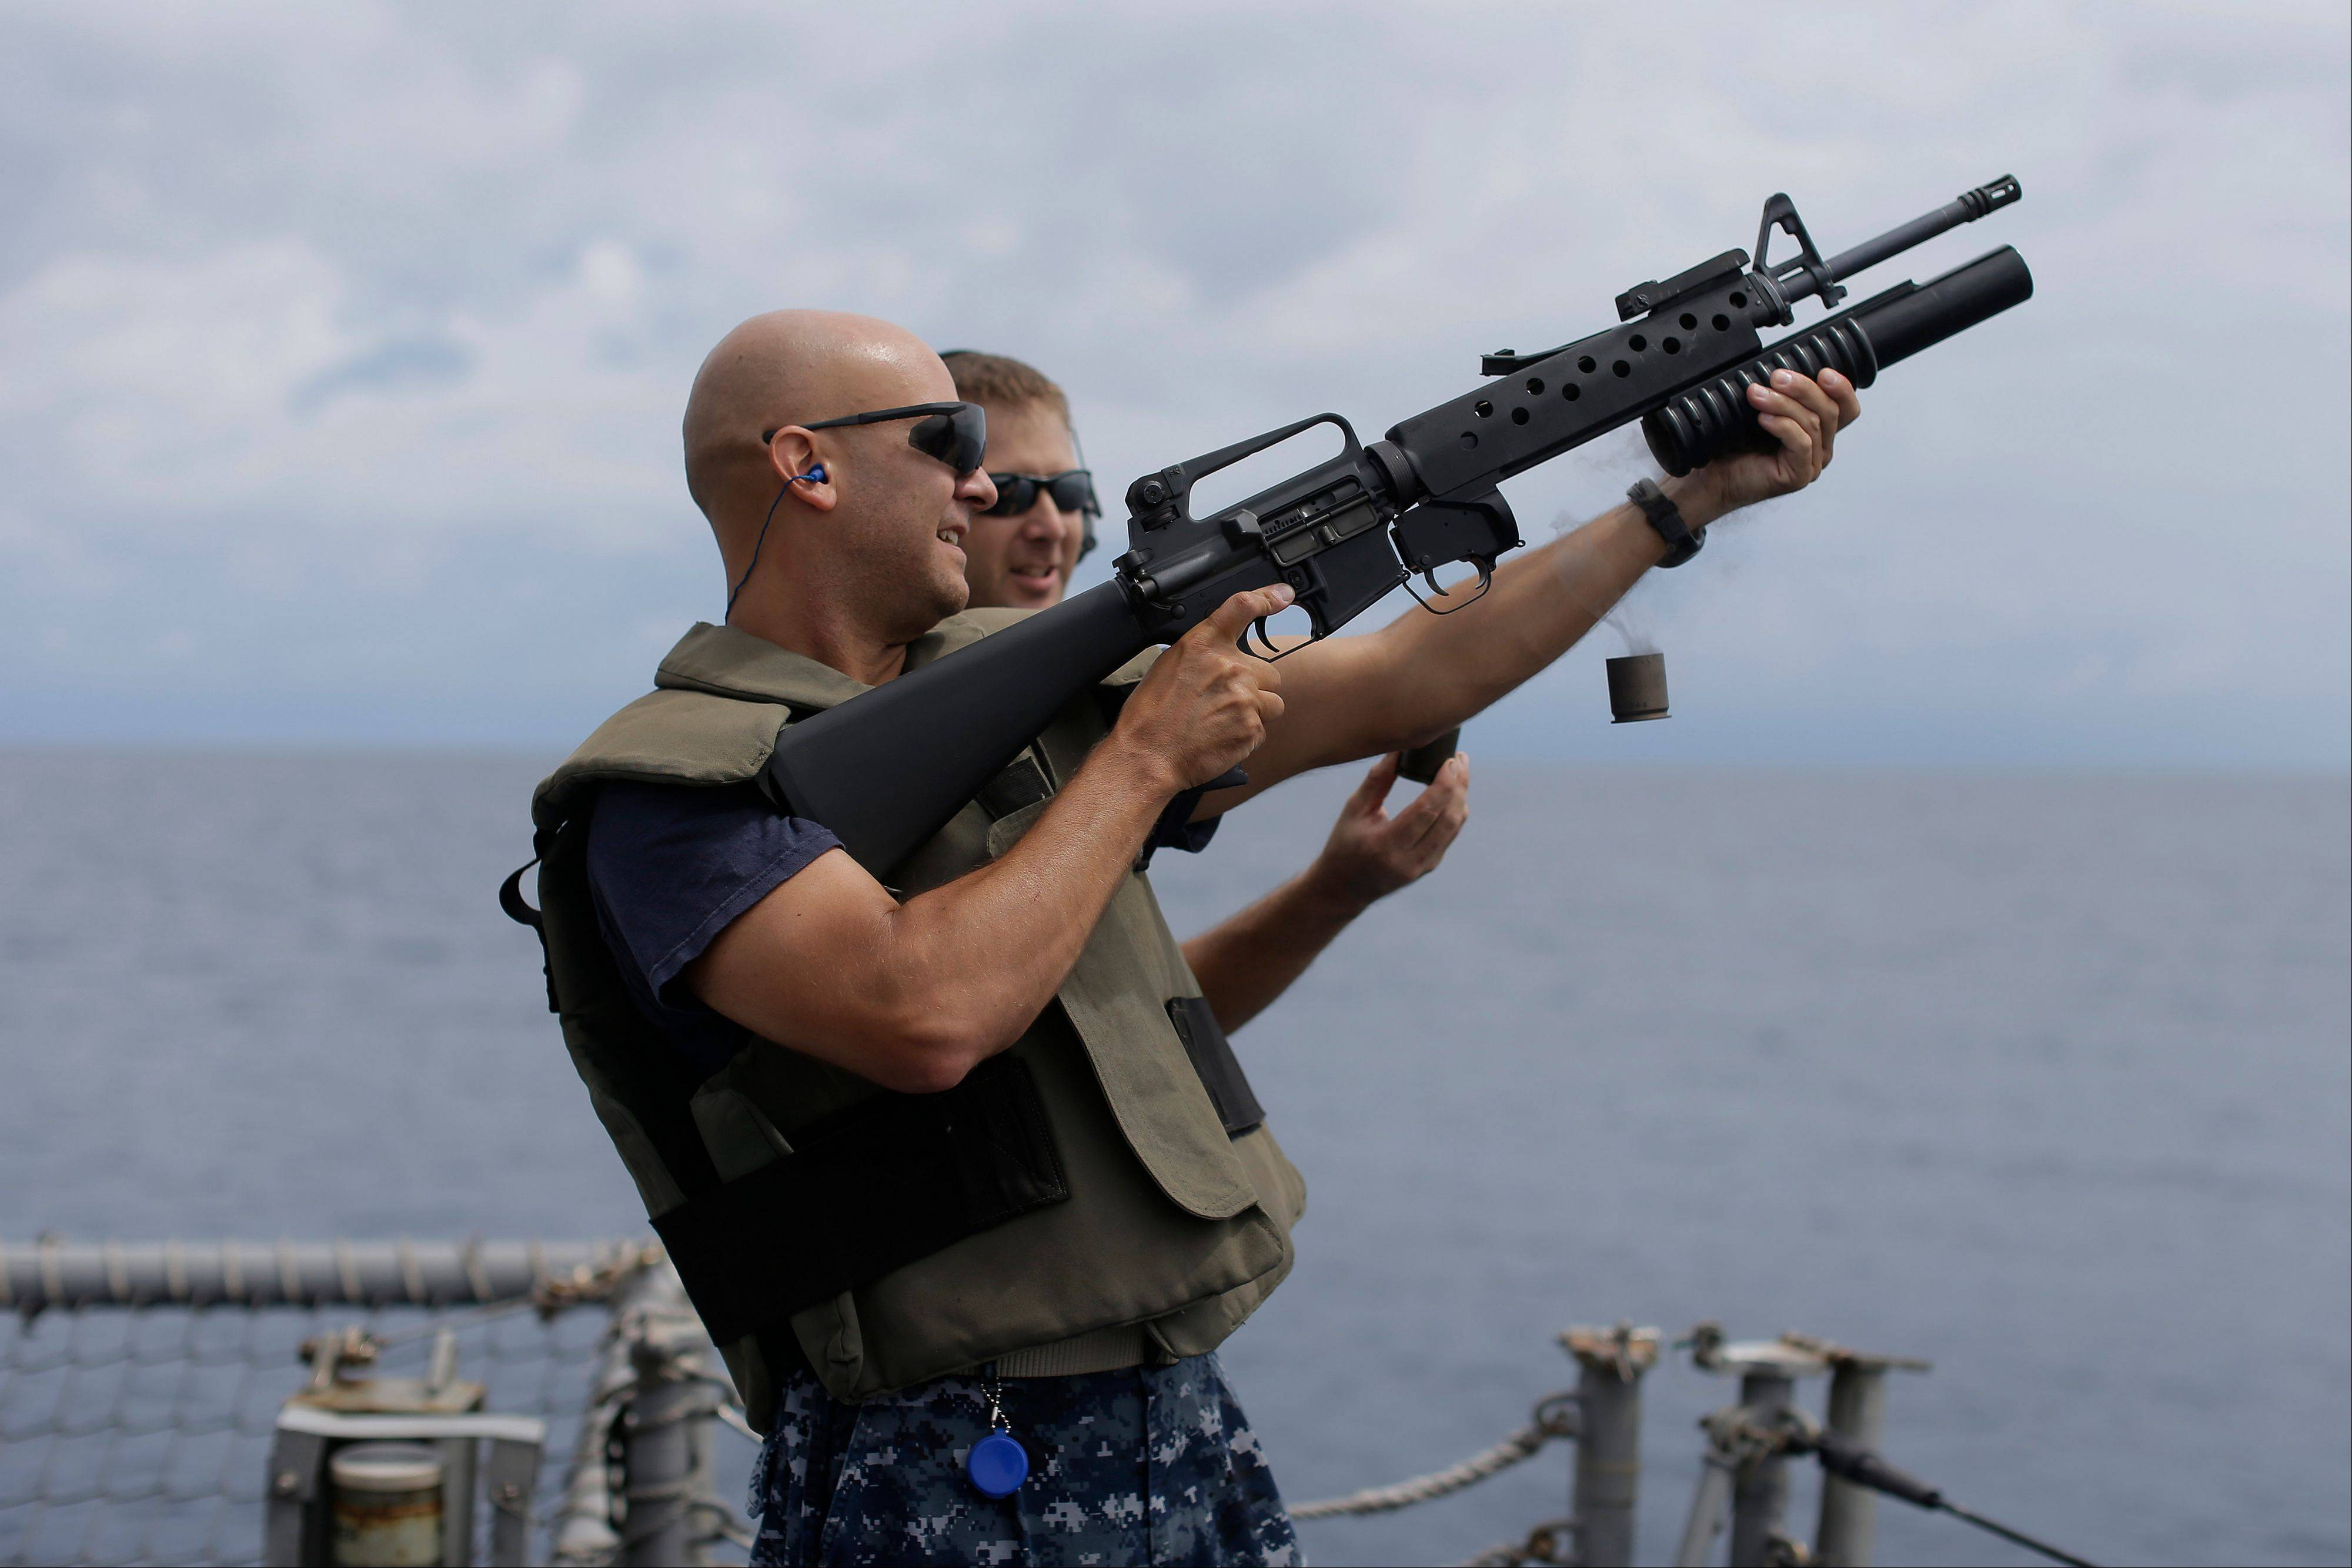 The captain of the USS Underwood, Peter T. Mirisola, fires a grenade launcher during small arms qualifications onboard the ship while patrolling in international waters near Panama. In the most expensive initiative in Latin America since the Cold War, the U.S. has militarized the battle against drug traffickers, spending more than $20 billion in the past decade. U.S. Army troops, Air Force pilots and Navy ships outfitted with Coast Guard counternarcotics teams are routinely deployed to chase, track and capture drug smugglers.